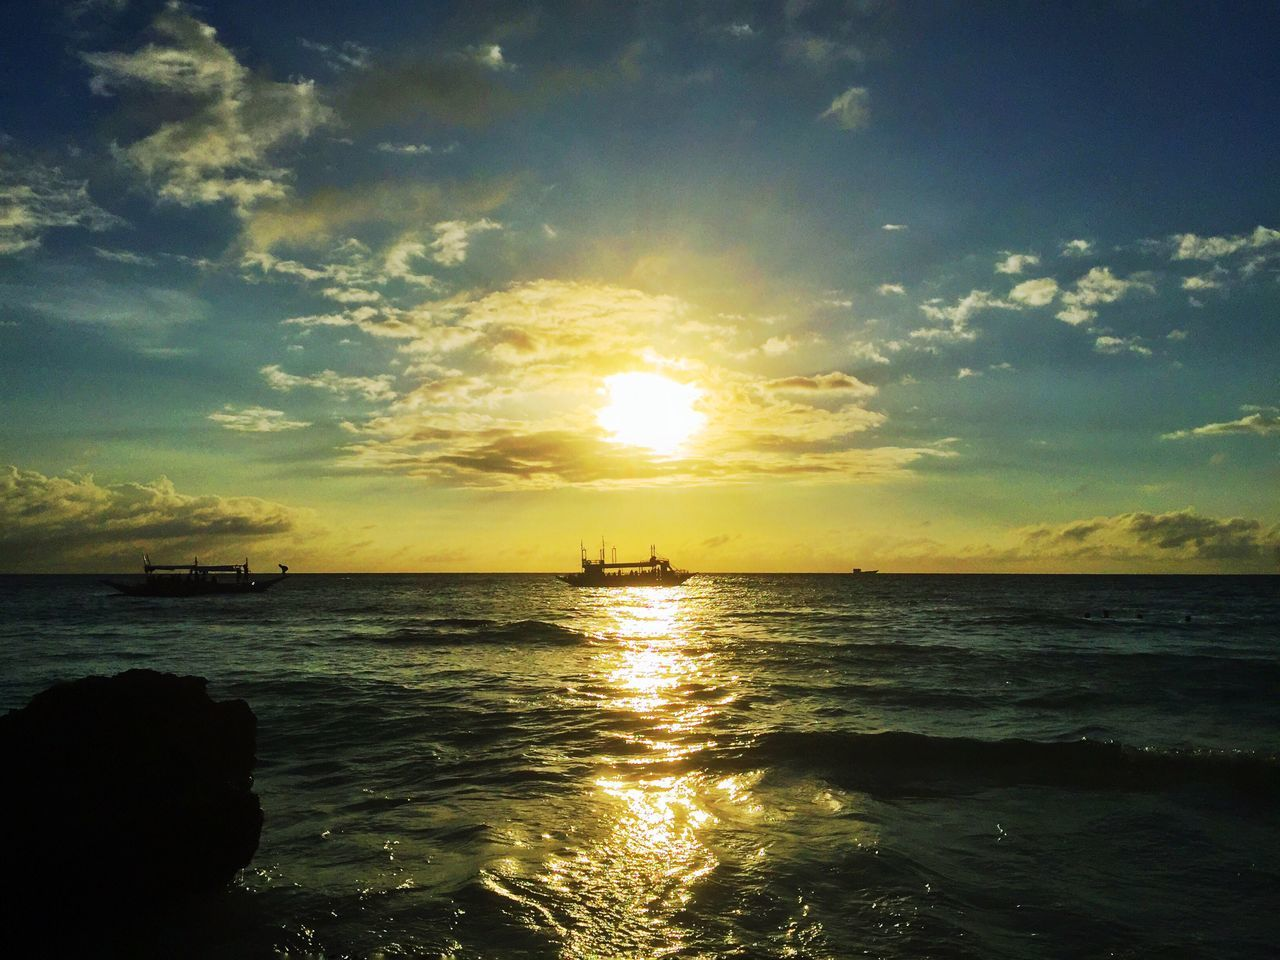 Boracay Sunset_collection Sea Water Sky Beauty In Nature Nature Sunset Scenics Tranquil Scene Horizon Over Water Sun Tranquility Reflection Sunlight Idyllic Outdoors Shiny Beach Cloud - Sky No People Day Nature's Diversities Eyeem Philippines My Smartphone Life